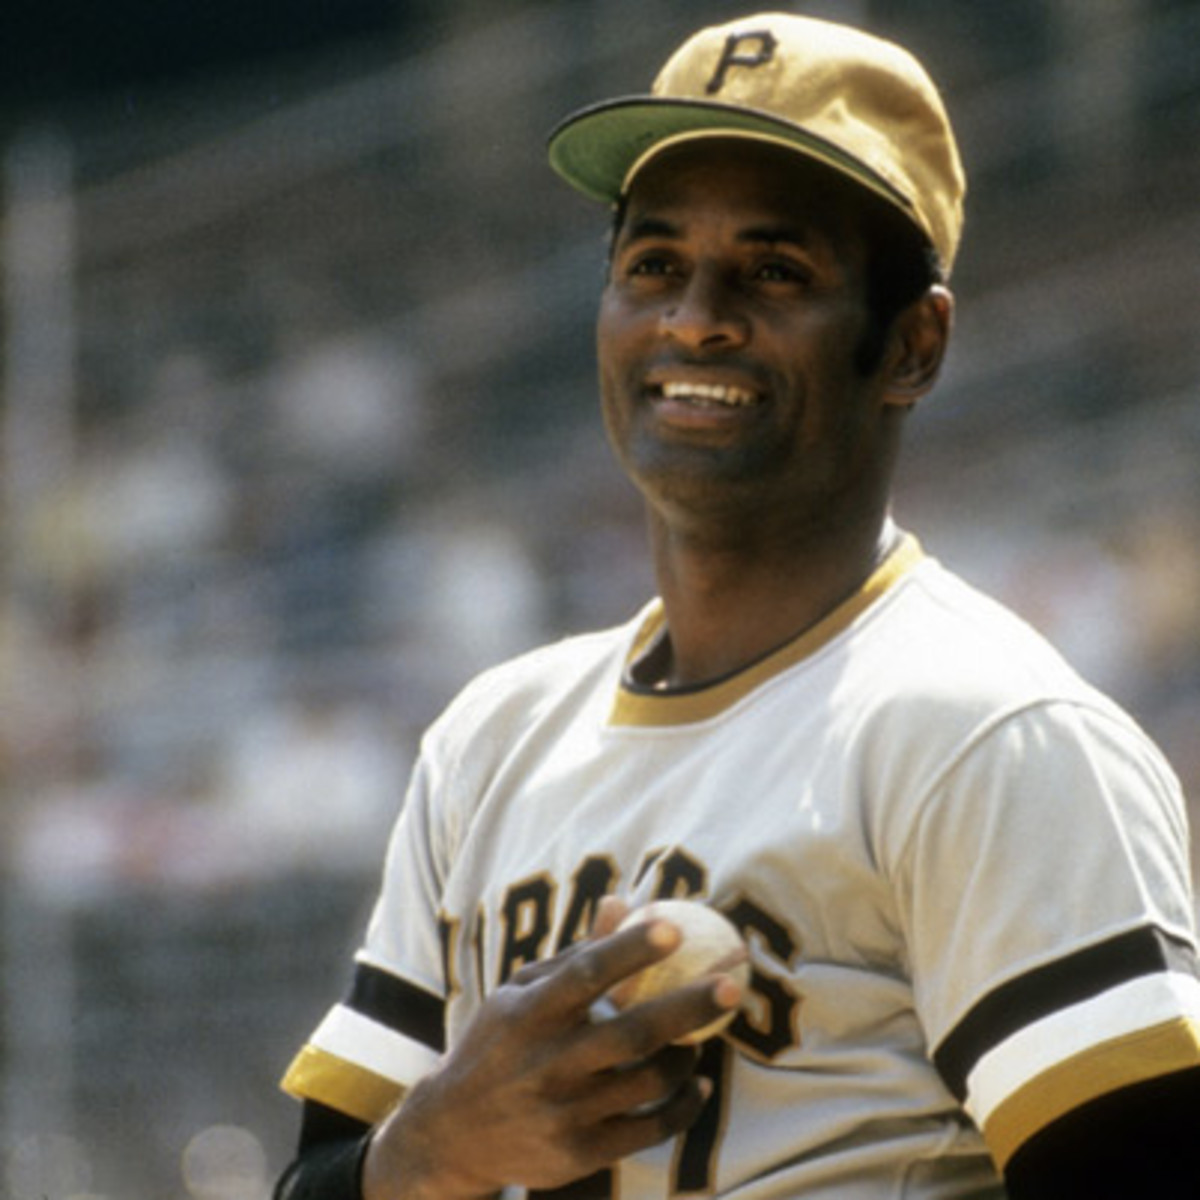 Roberto Clemente (Getty Images)